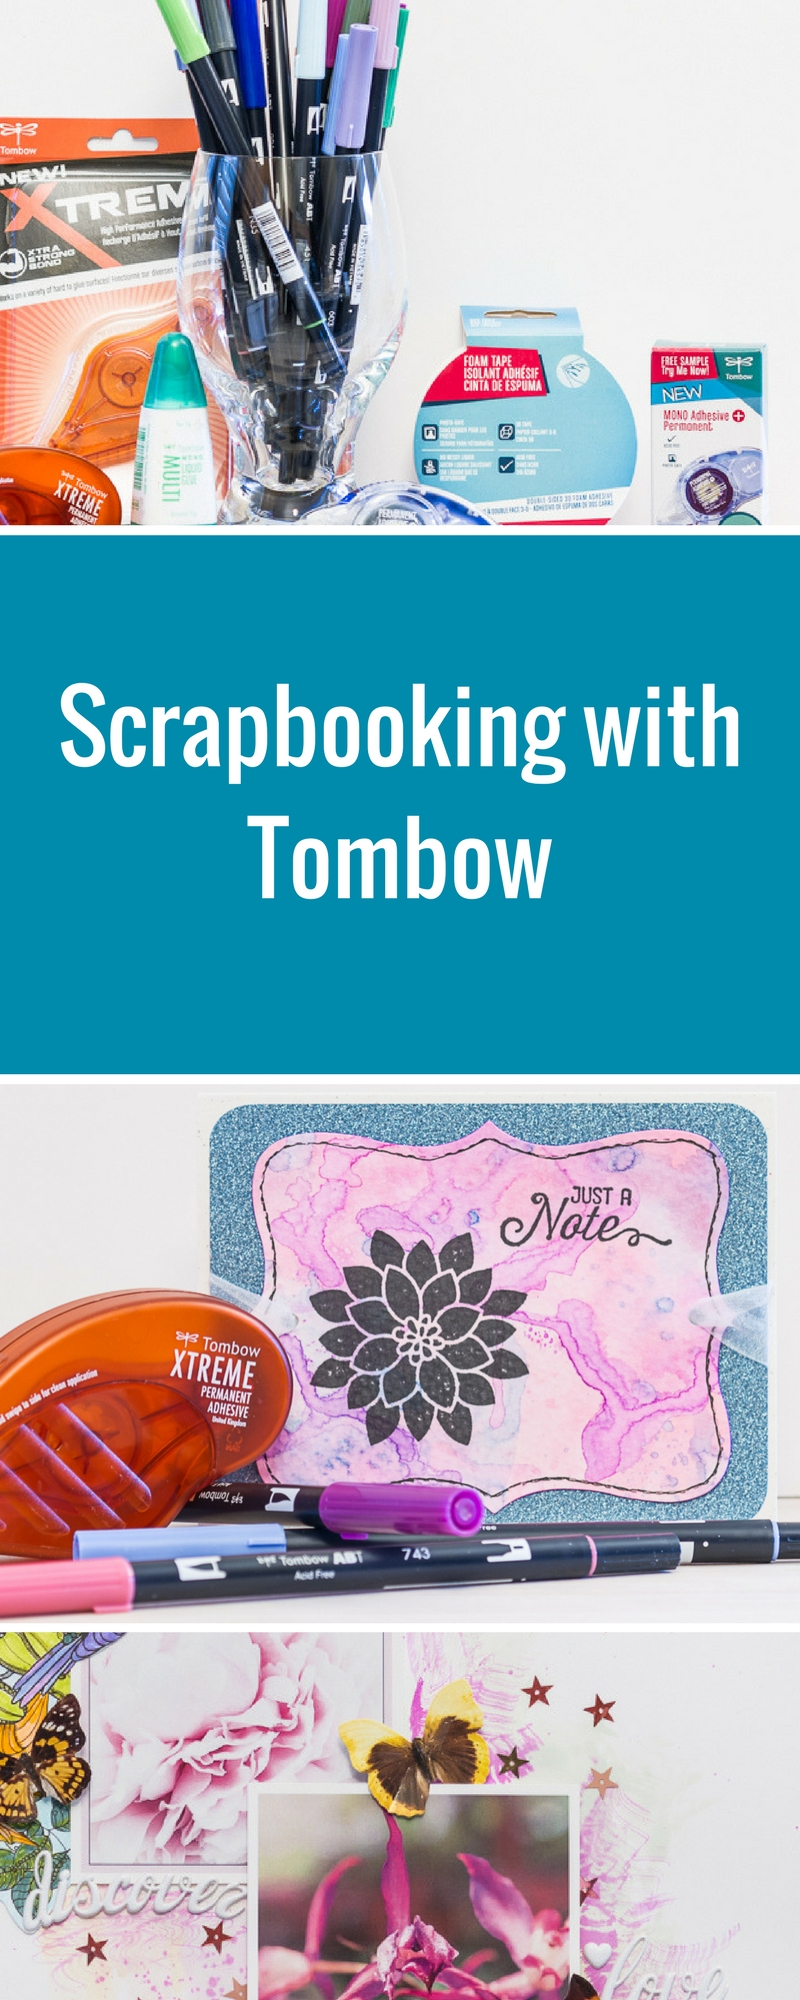 Tombow Scrapbooking Products | Projects Designed by Kim Gowdy | Creative Scrapbooker Magazine #coloring #scrapbooking